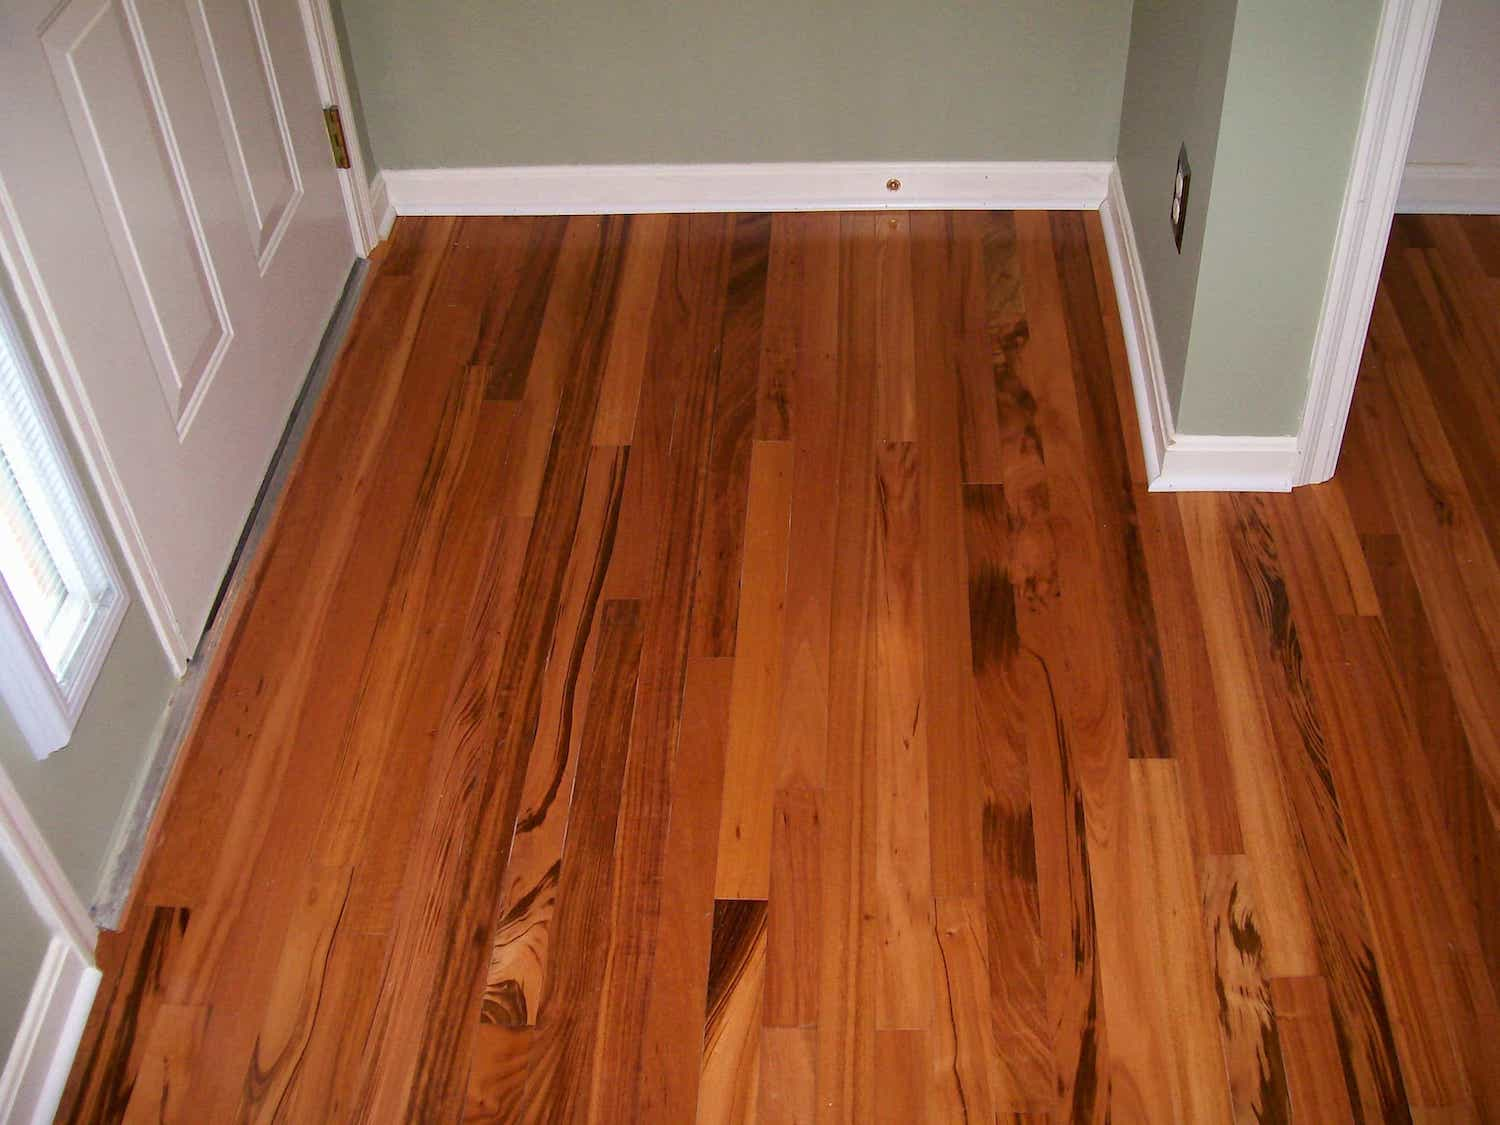 Pergo Red Oak Scratch Resistant Laminate Flooring